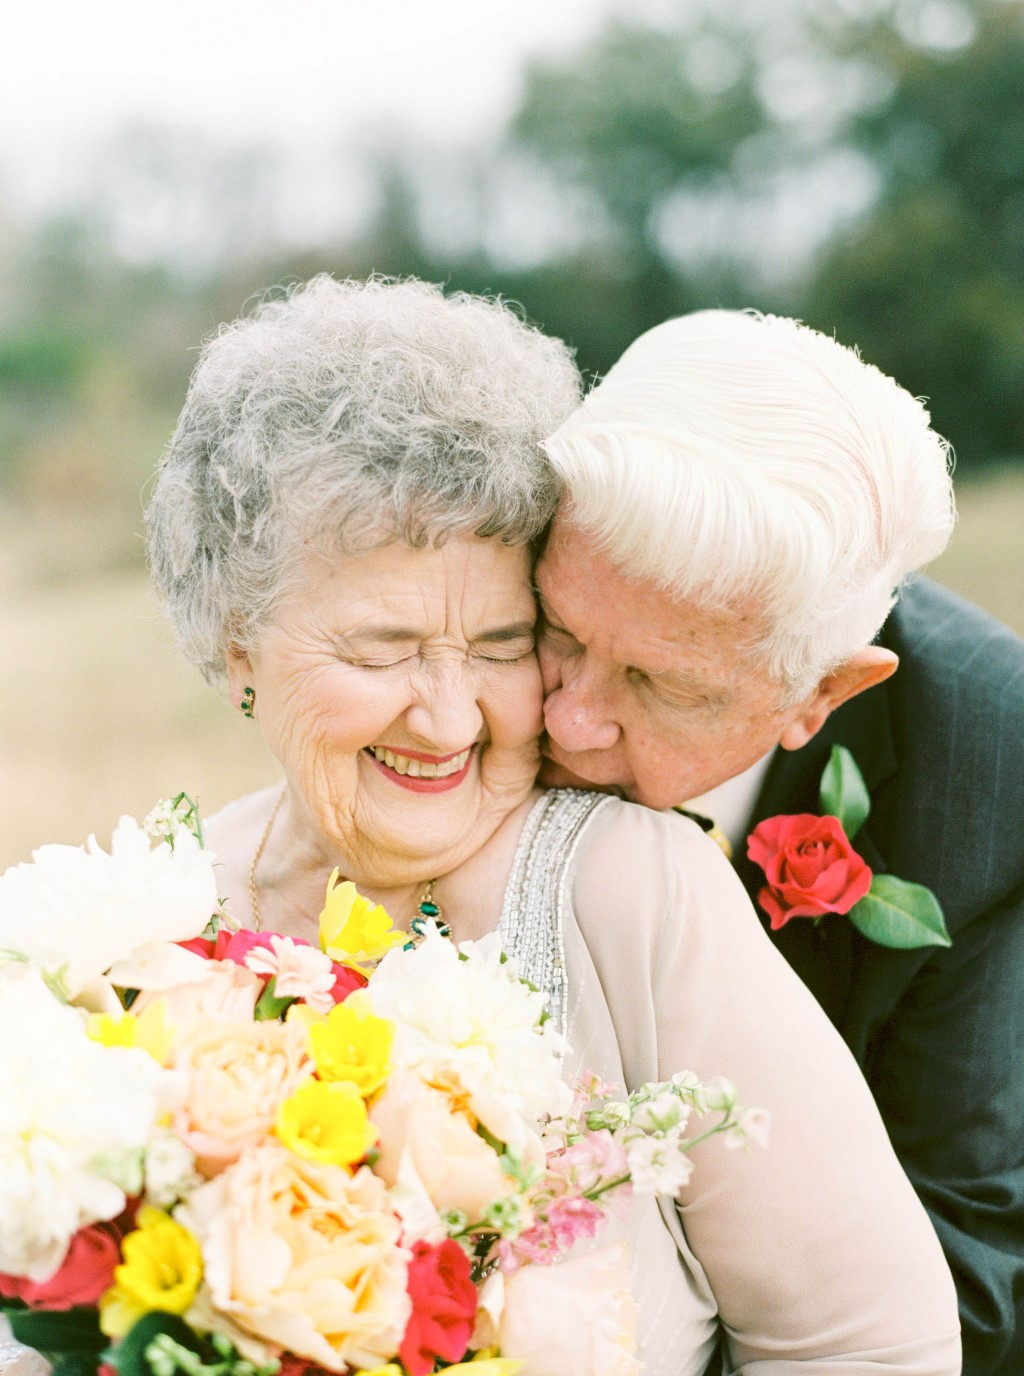 Marriage - lasting Marriage - long term love - growing old together - marriage goals - marriage milestones - Love The Nelsons